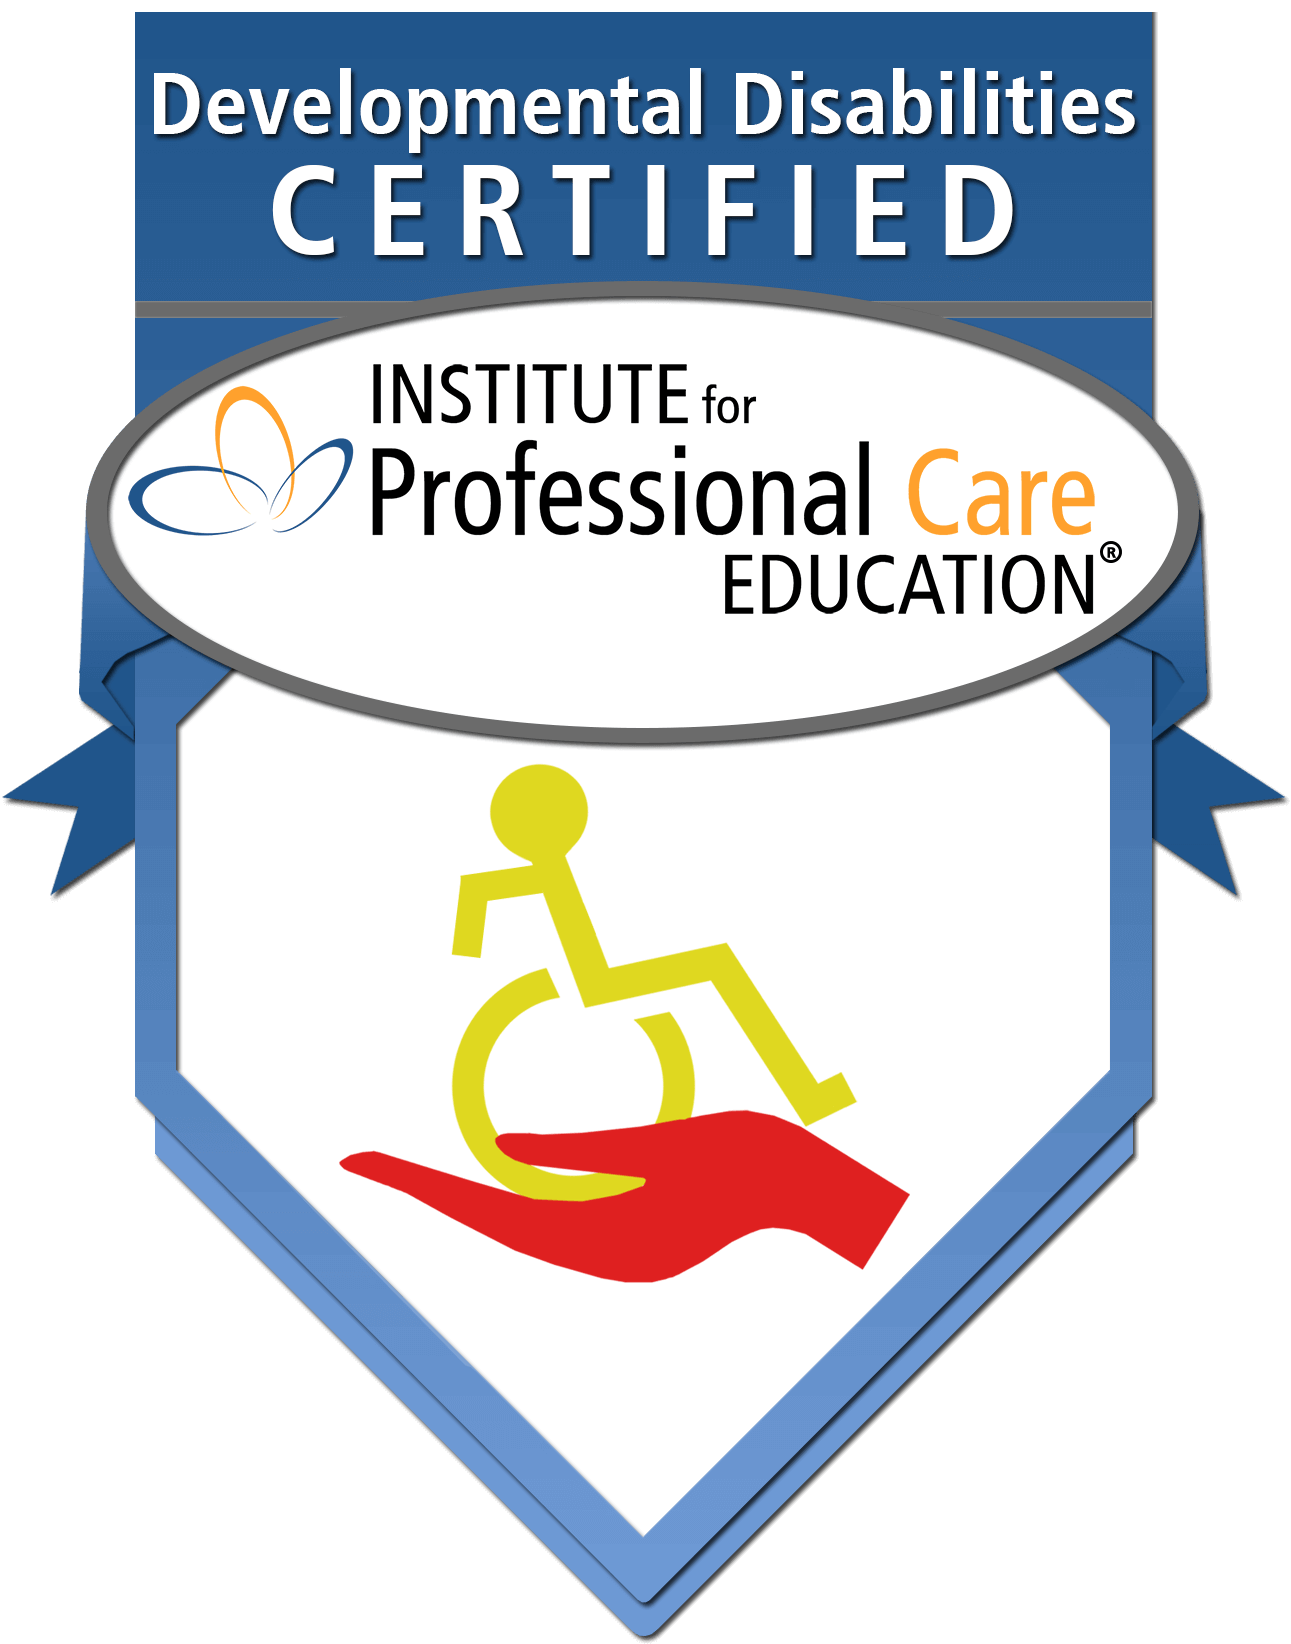 Homecare Agency is Developmental Disabilities Certified by Institute for Professional Care Education